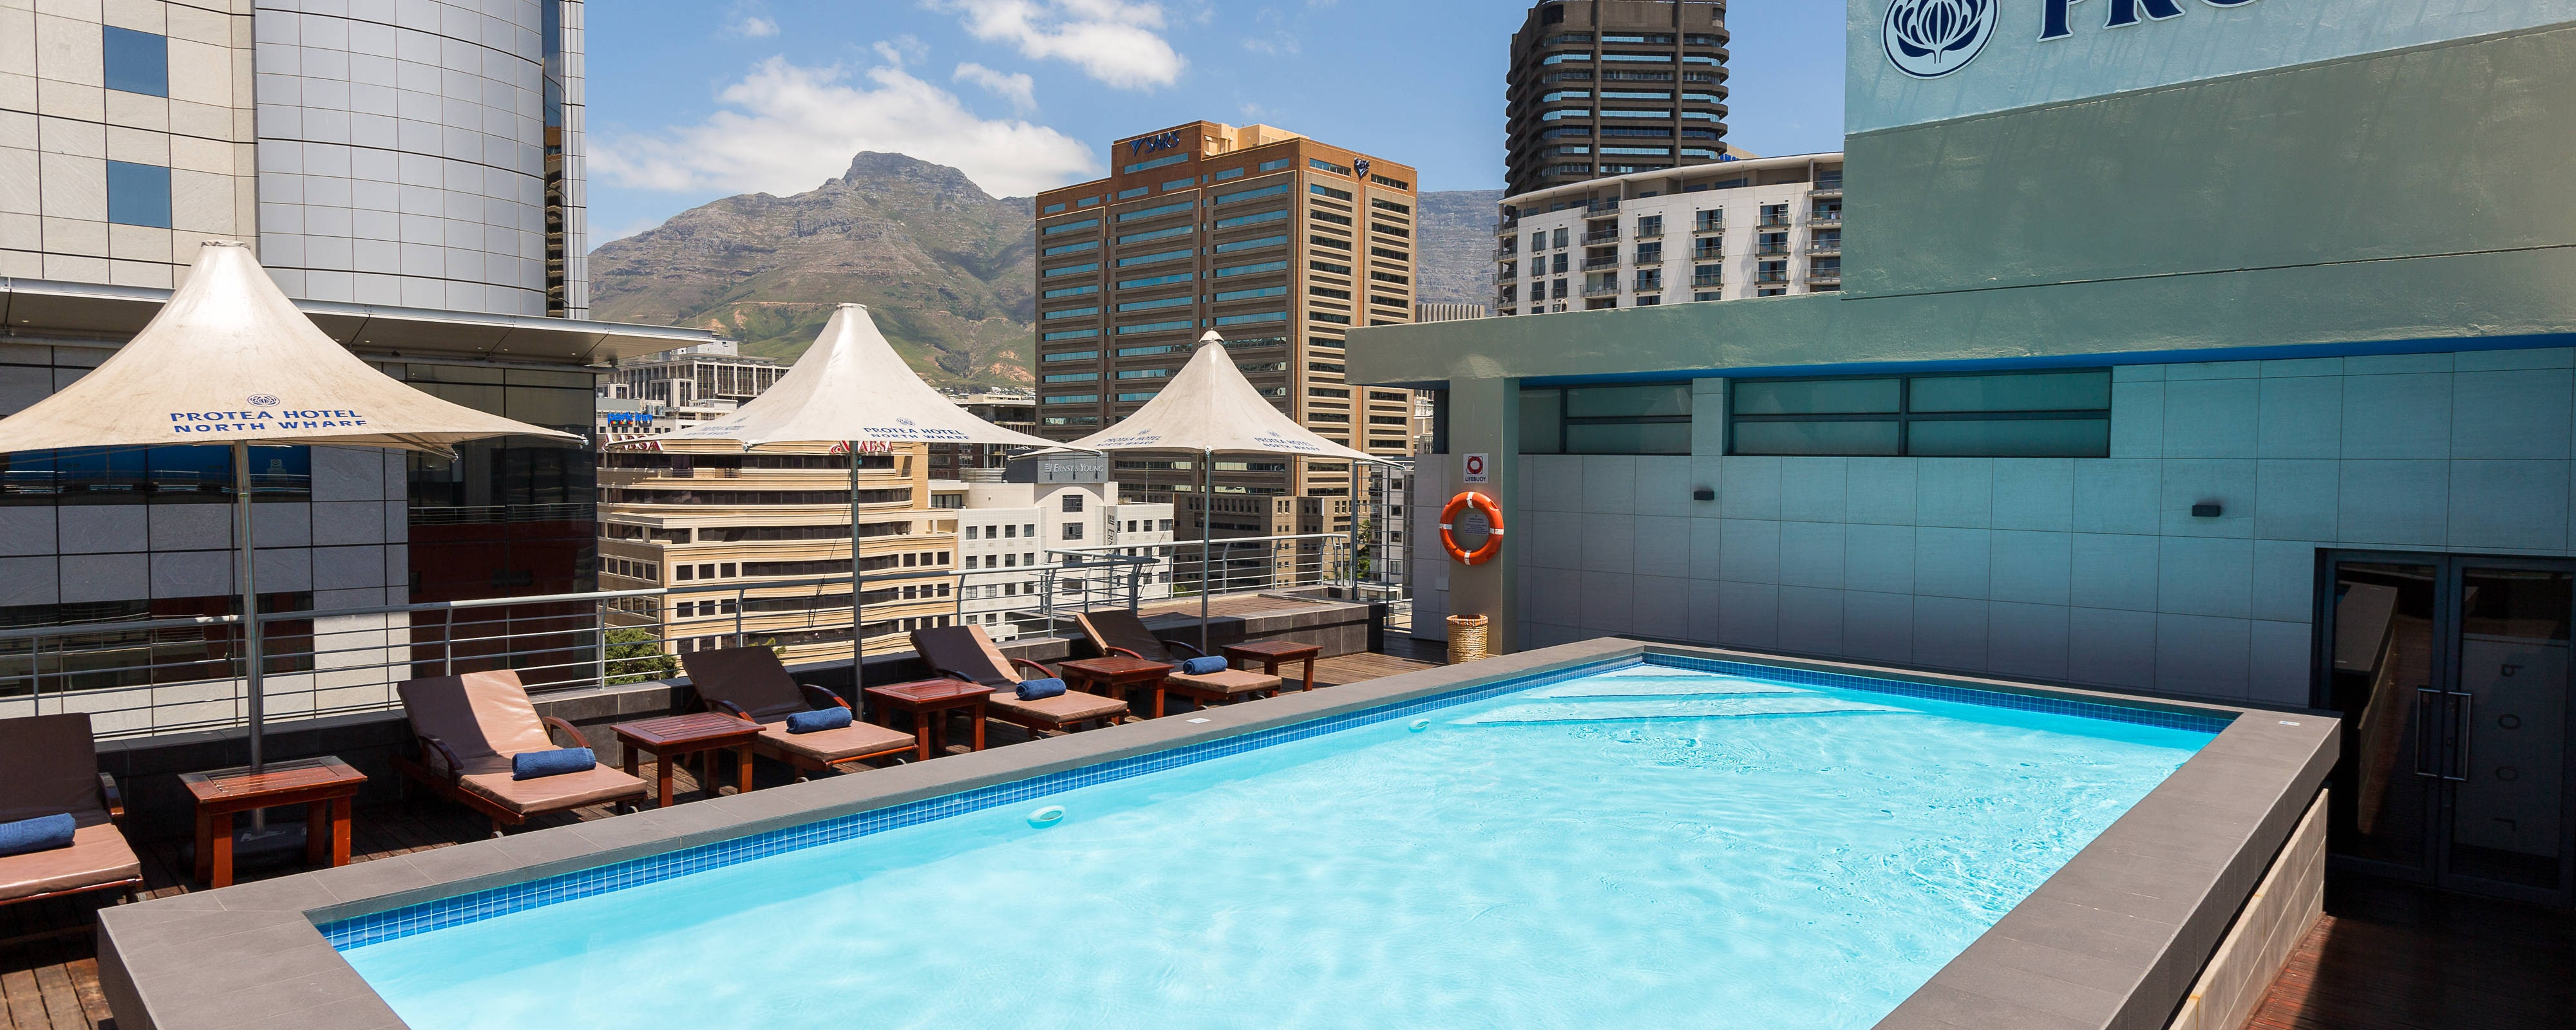 Hotel Outdoor Rooftop Pool